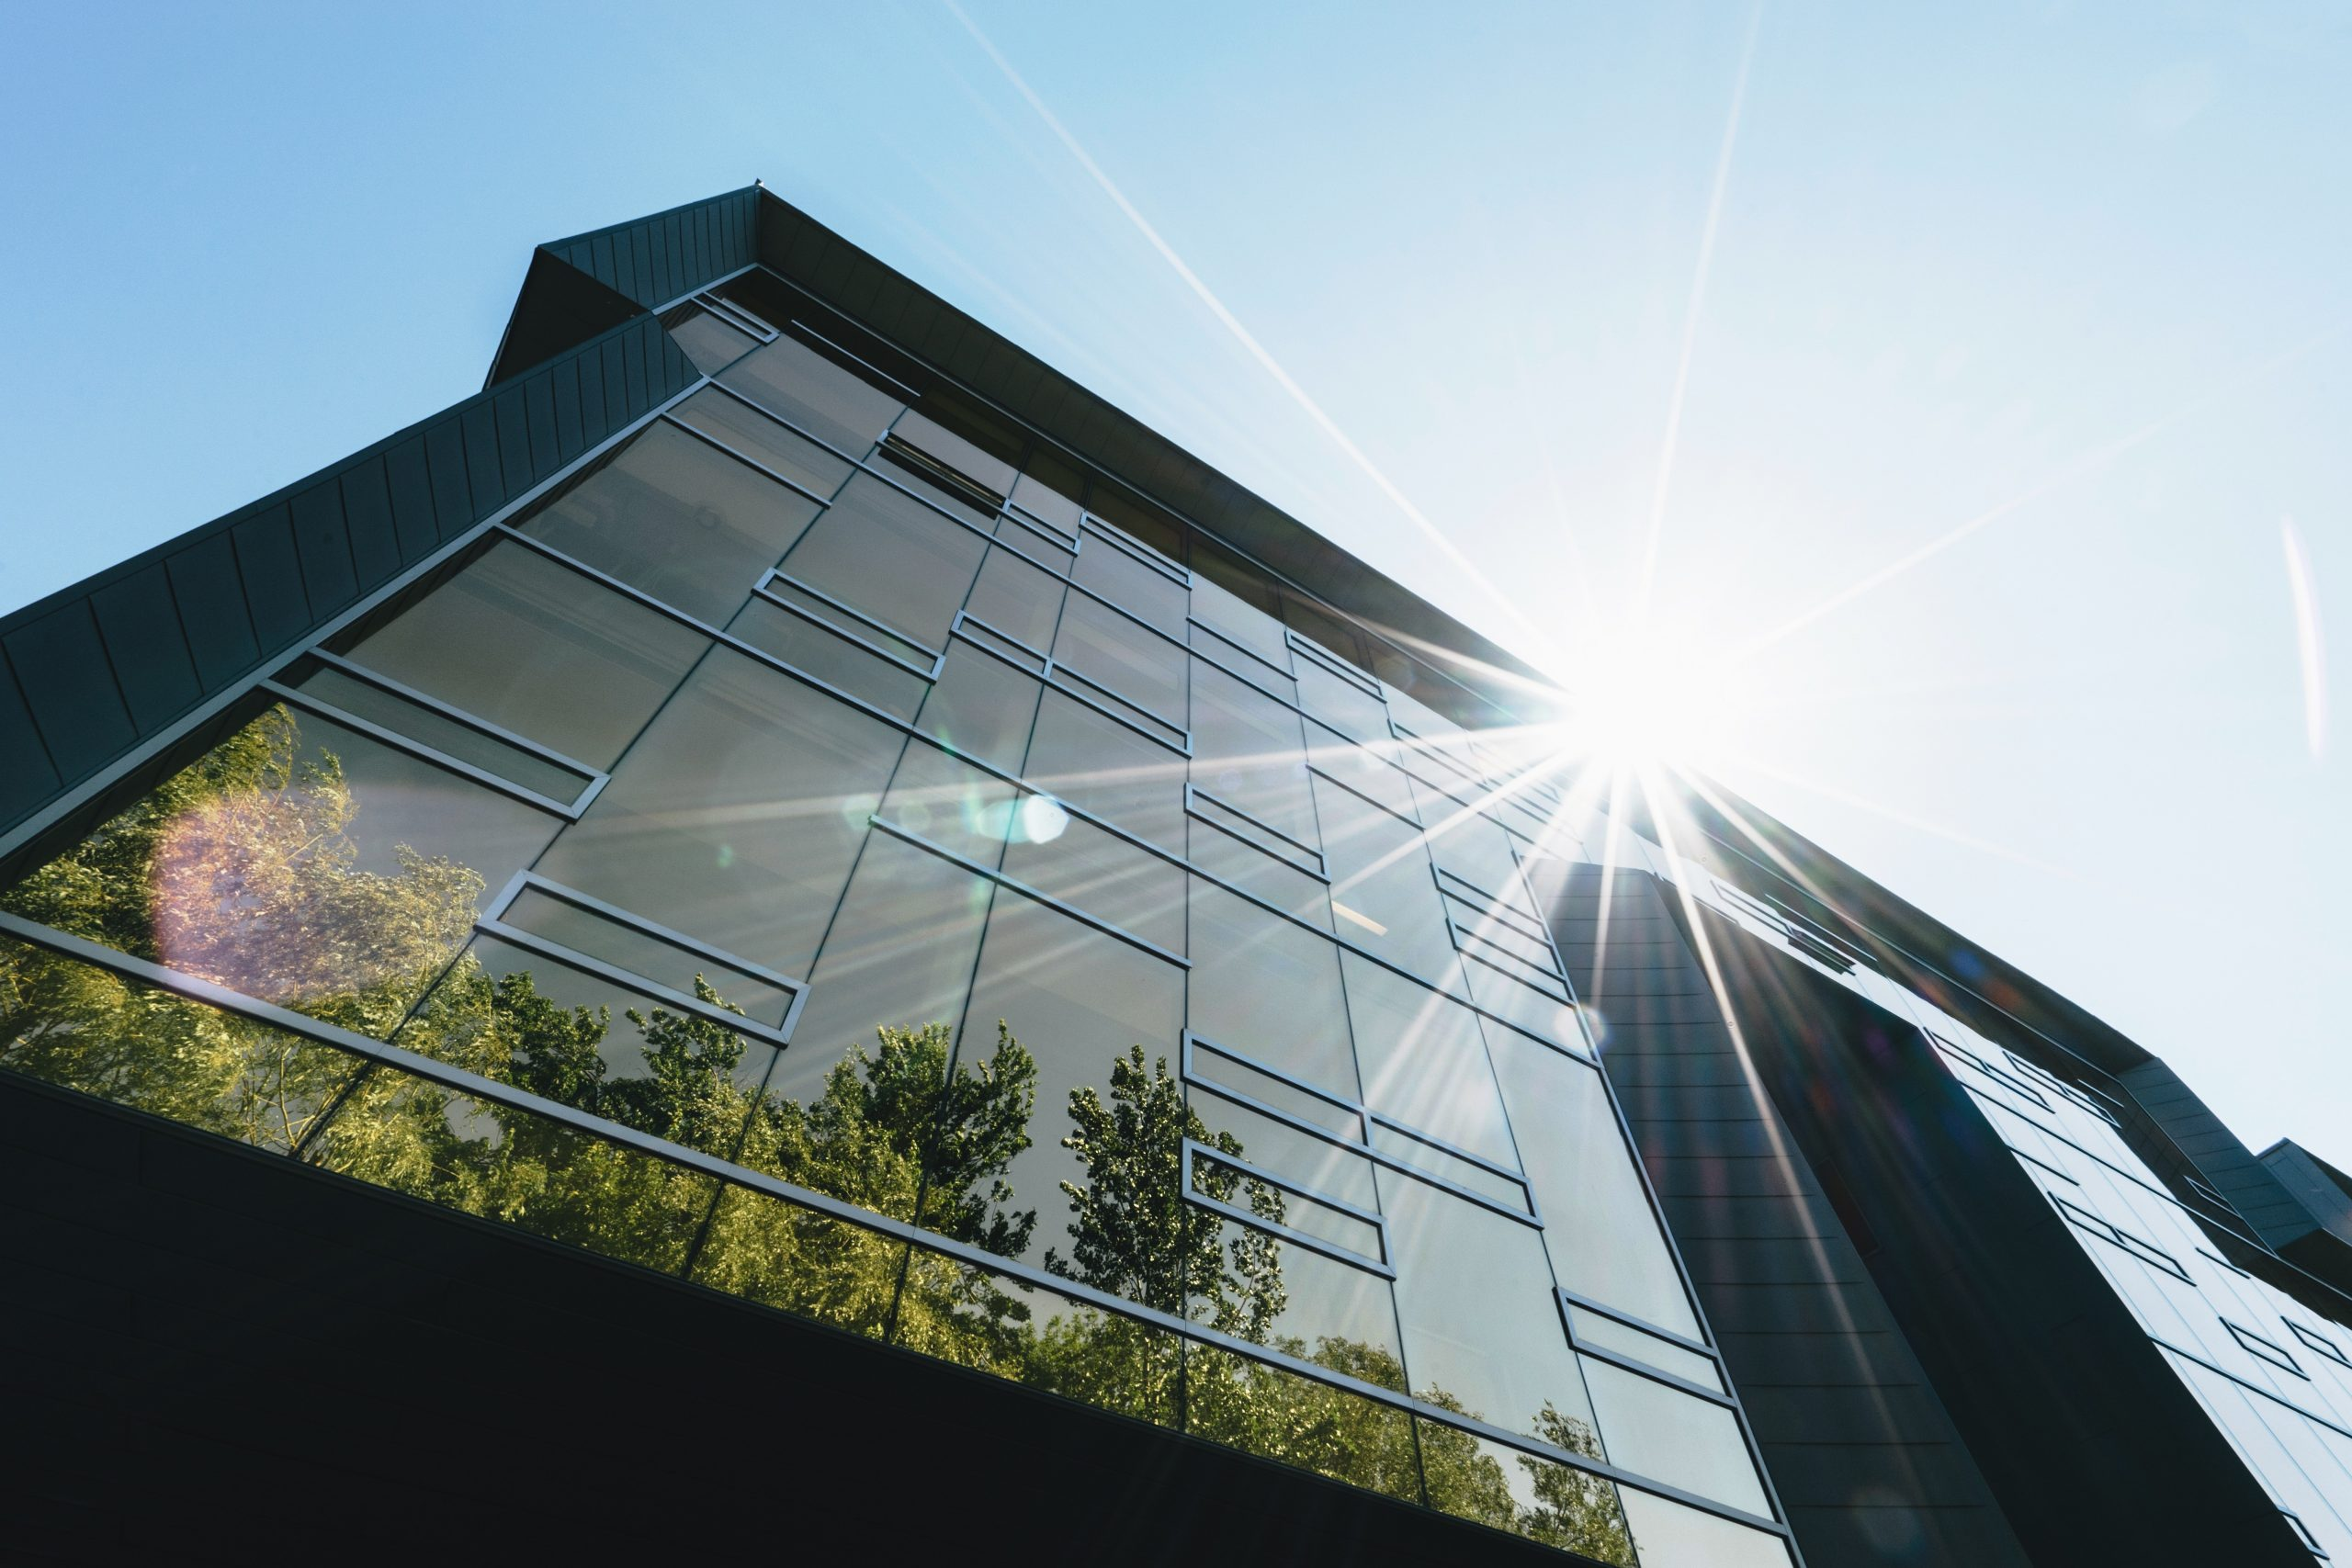 Designing a nett zero carbon rated building